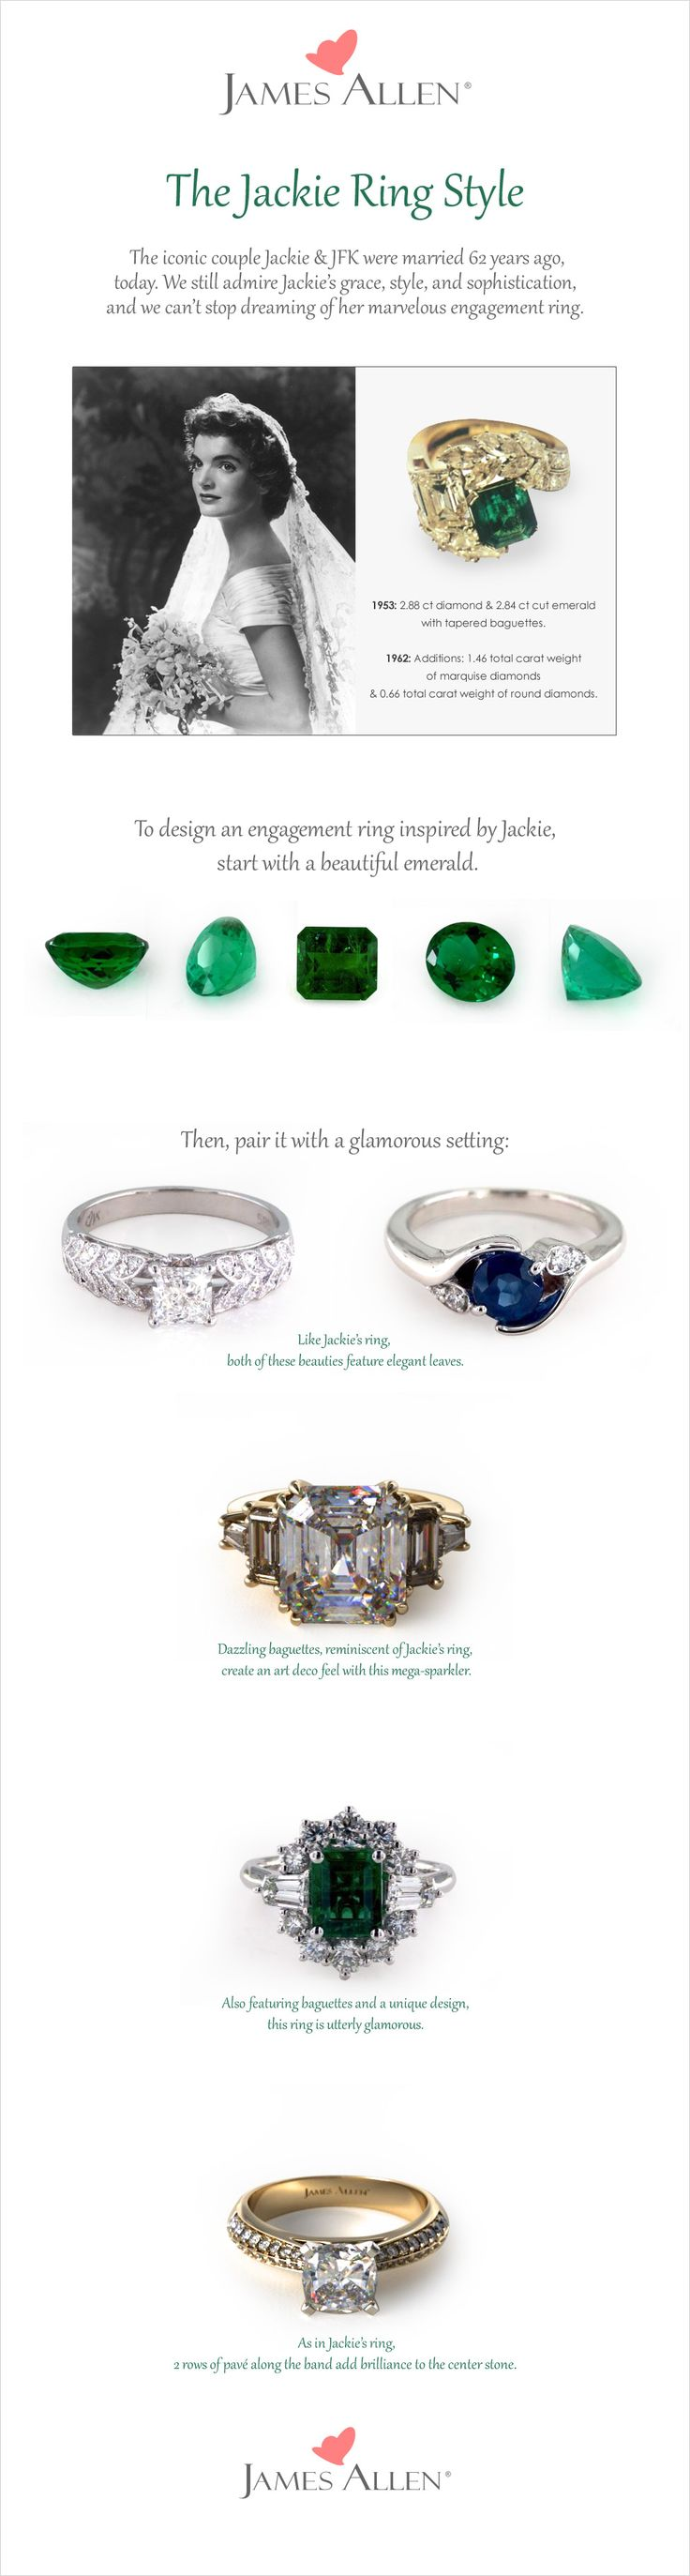 Jackie Kennedy had an iconic style. The engagement ring given to her by John F. Kennedy in 1953 had a 2.84 ct Emerald and 2.88 ct diamond with tapered baguettes.   Want to get Jackie's look? James Allen has hundreds of stunning engagement ring styles in white gold, yellow gold, rose gold and platinum. Find your Jackie inspired #engagement #ring at www.jamesallen.com and pair it with the diamond or gemstone of your choice. #engagementrings #vintage